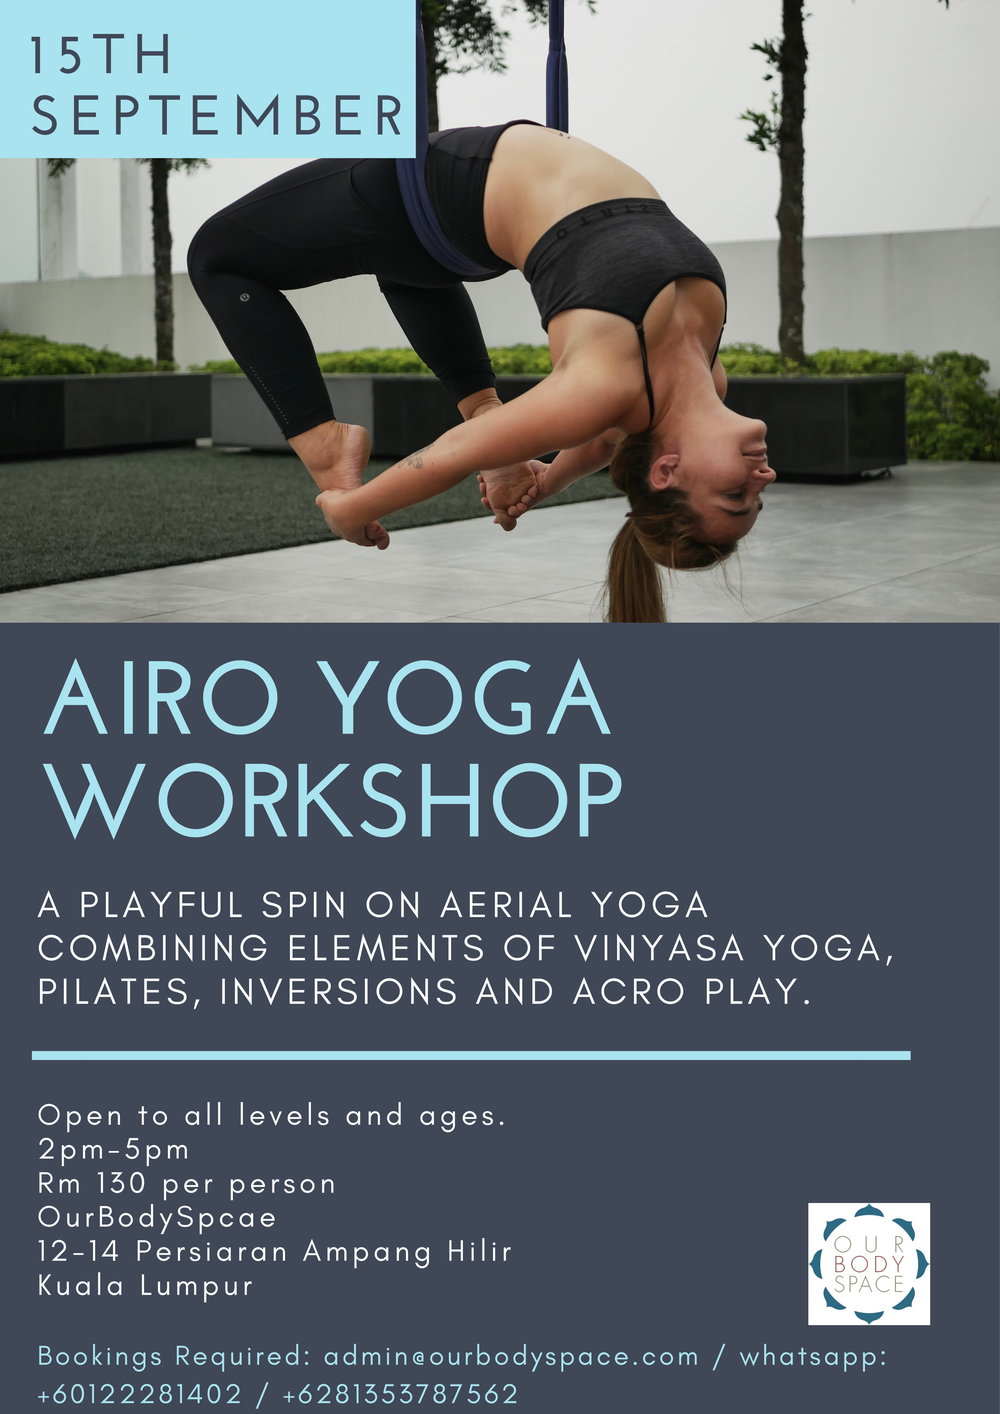 Airo Yoga Workshop 15th September-1.jpg